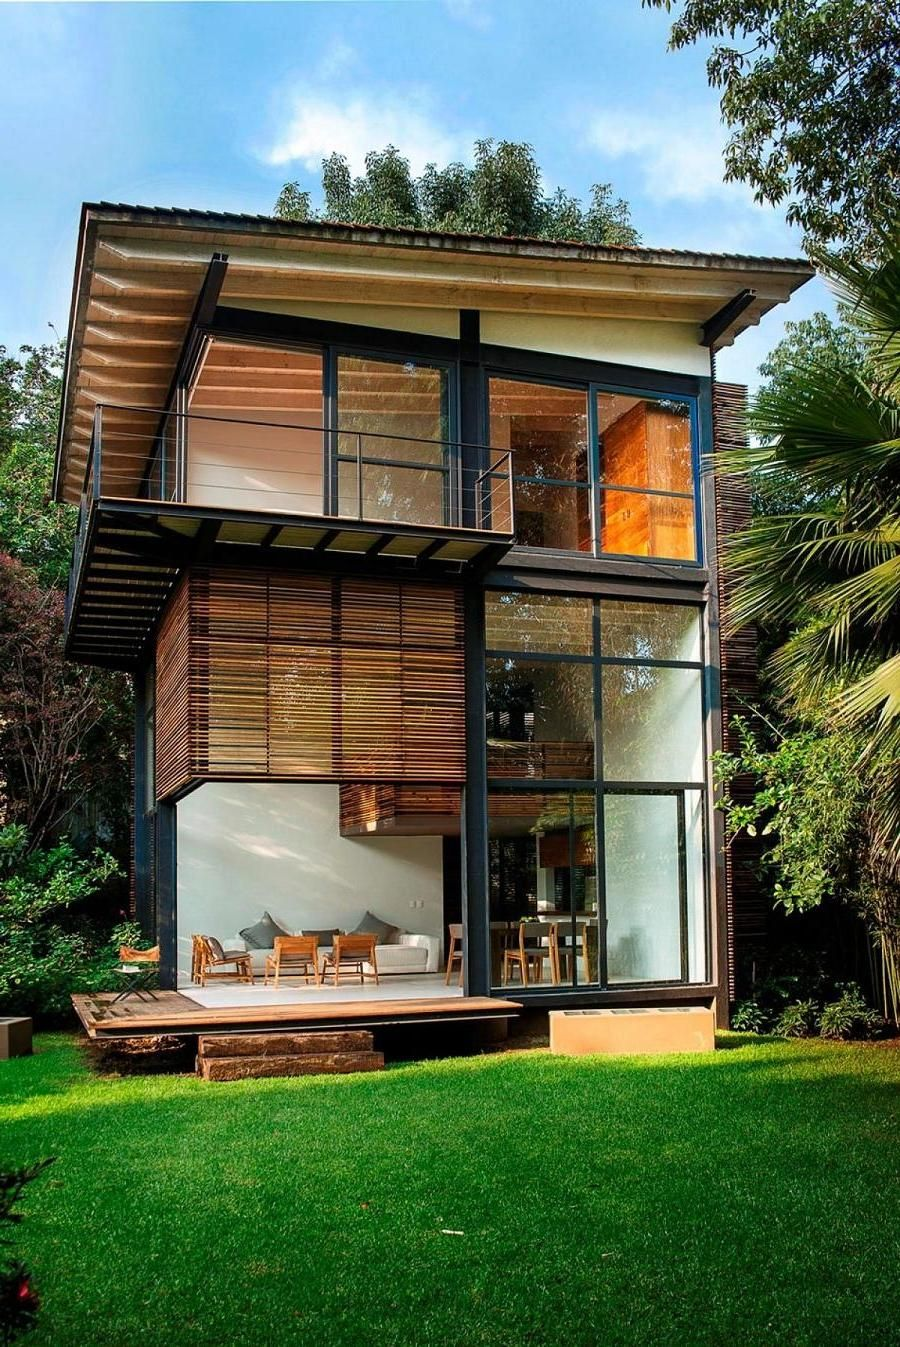 Contemporary small modern prefab house design with wide glass window in terrace as well elegant furniture